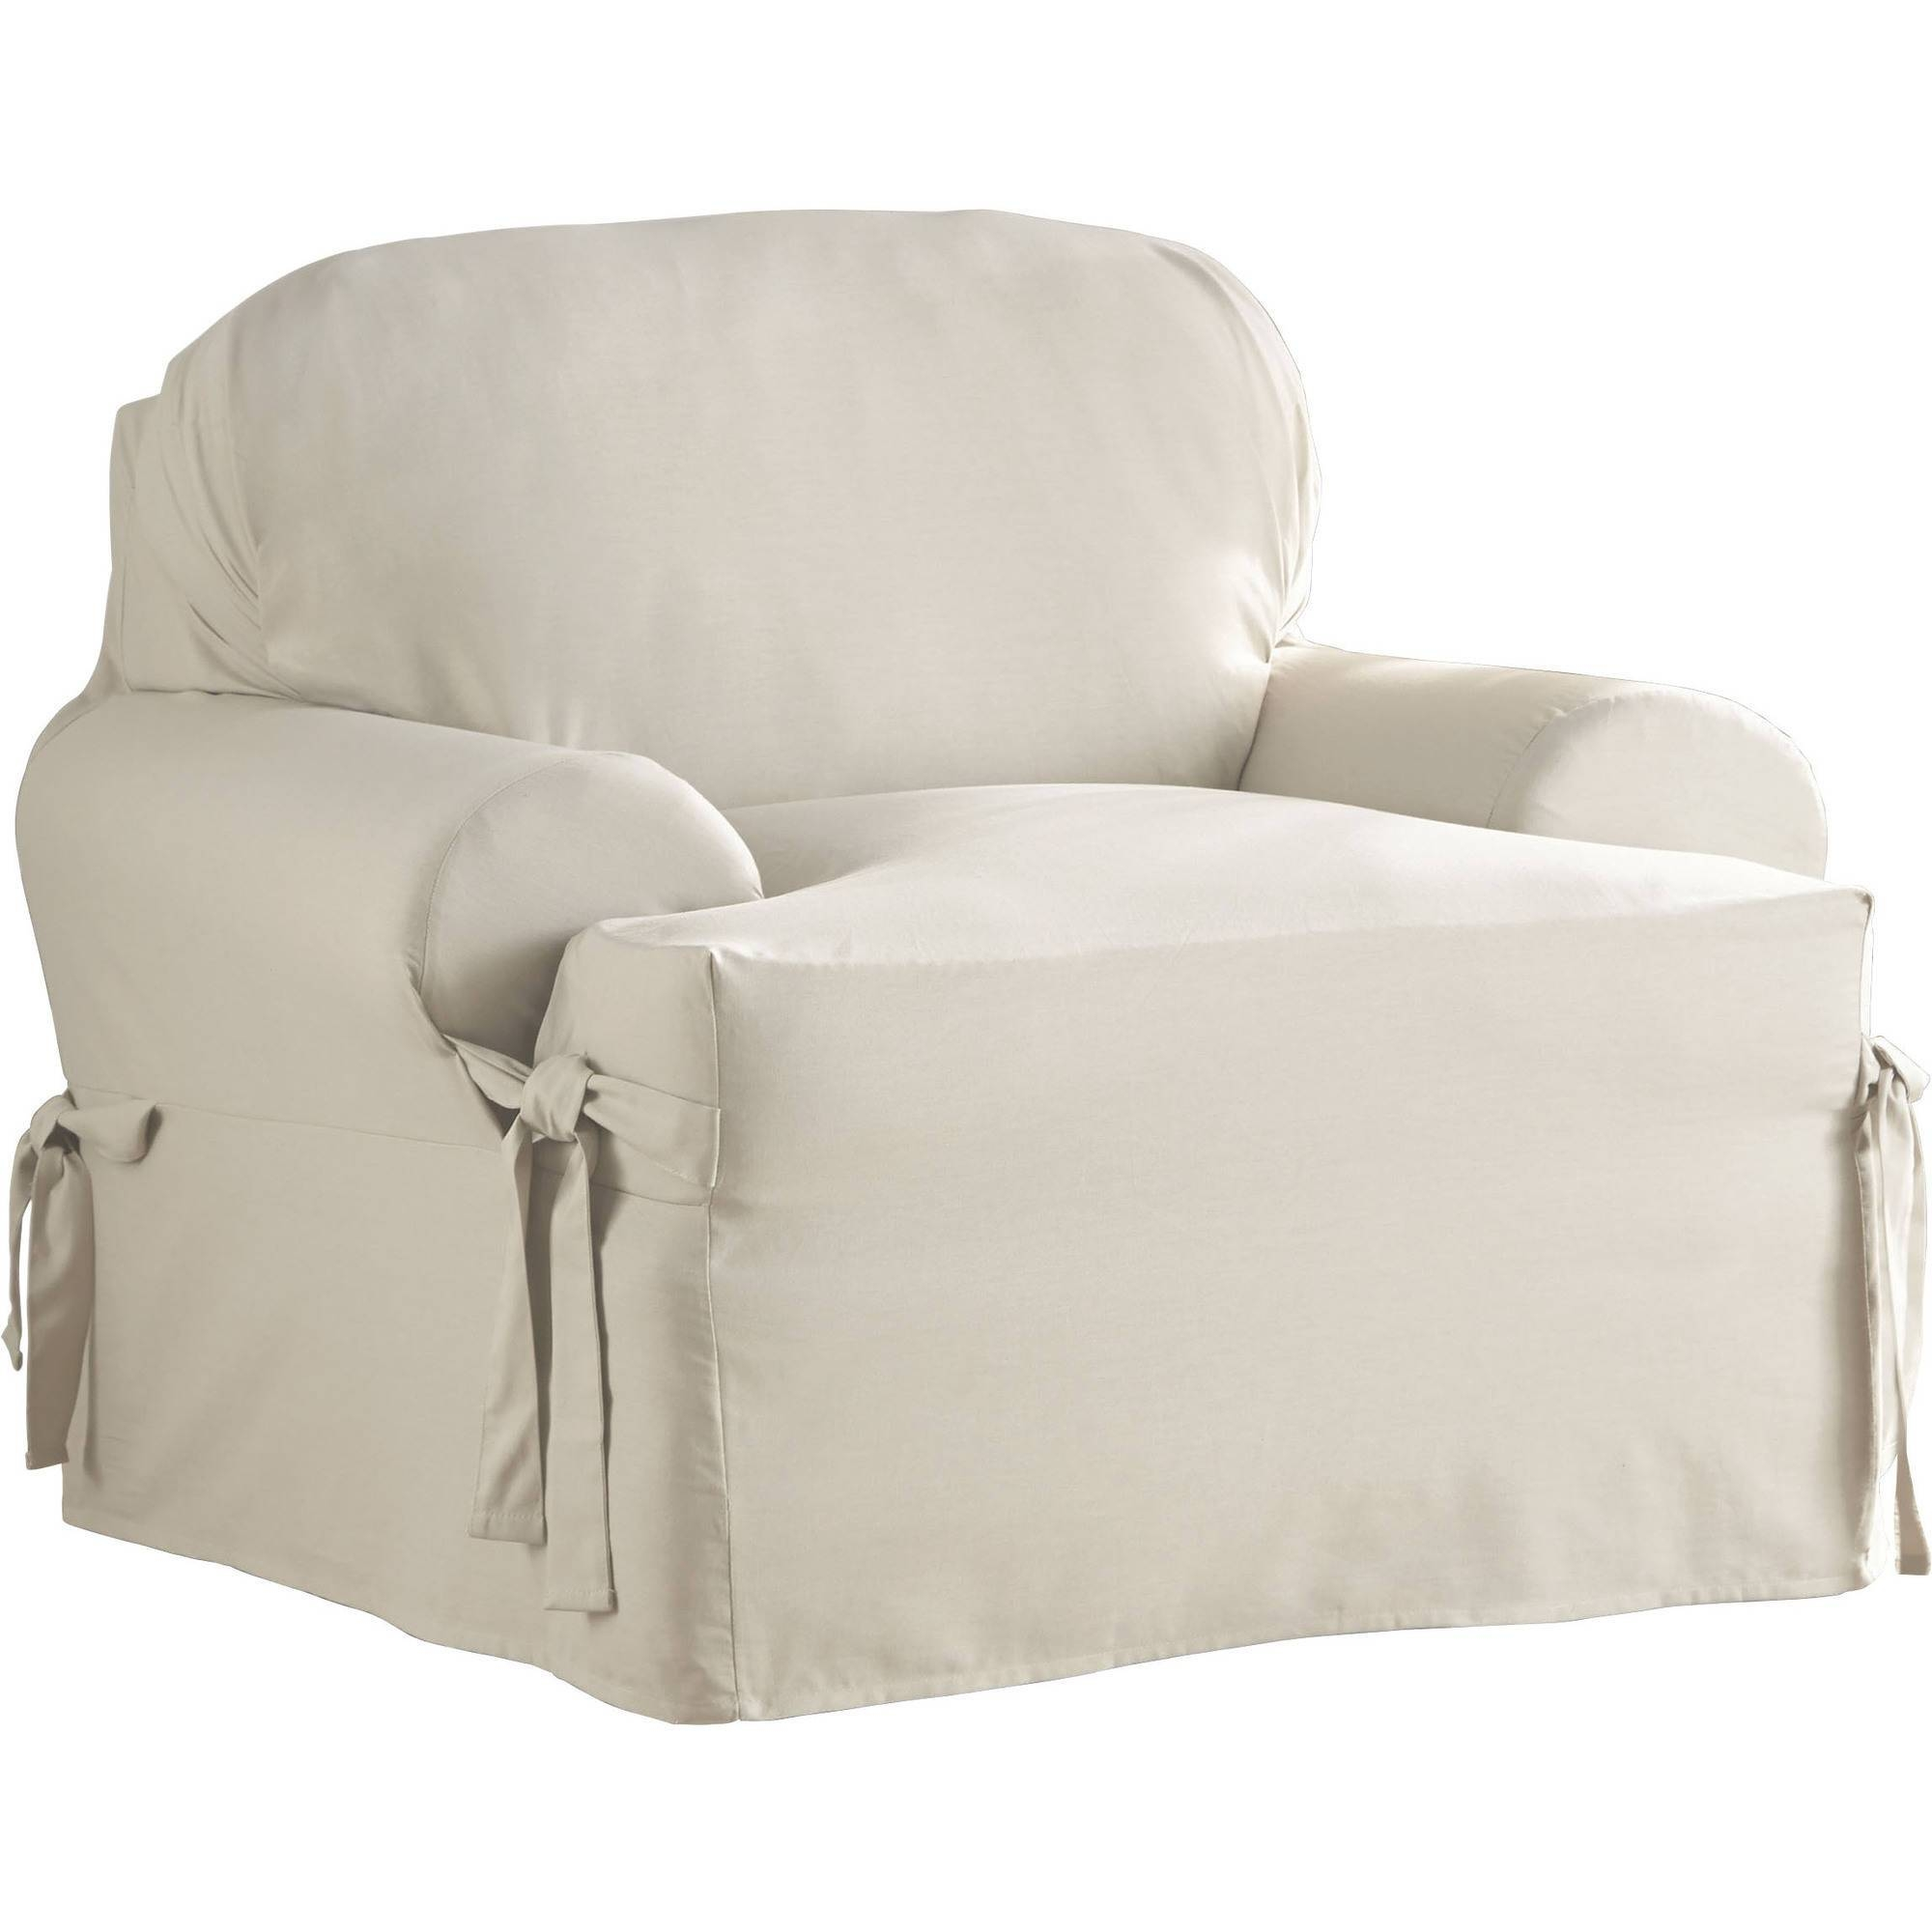 Slipcovers - Walmart with regard to Sofa Loveseat Slipcovers (Image 23 of 30)